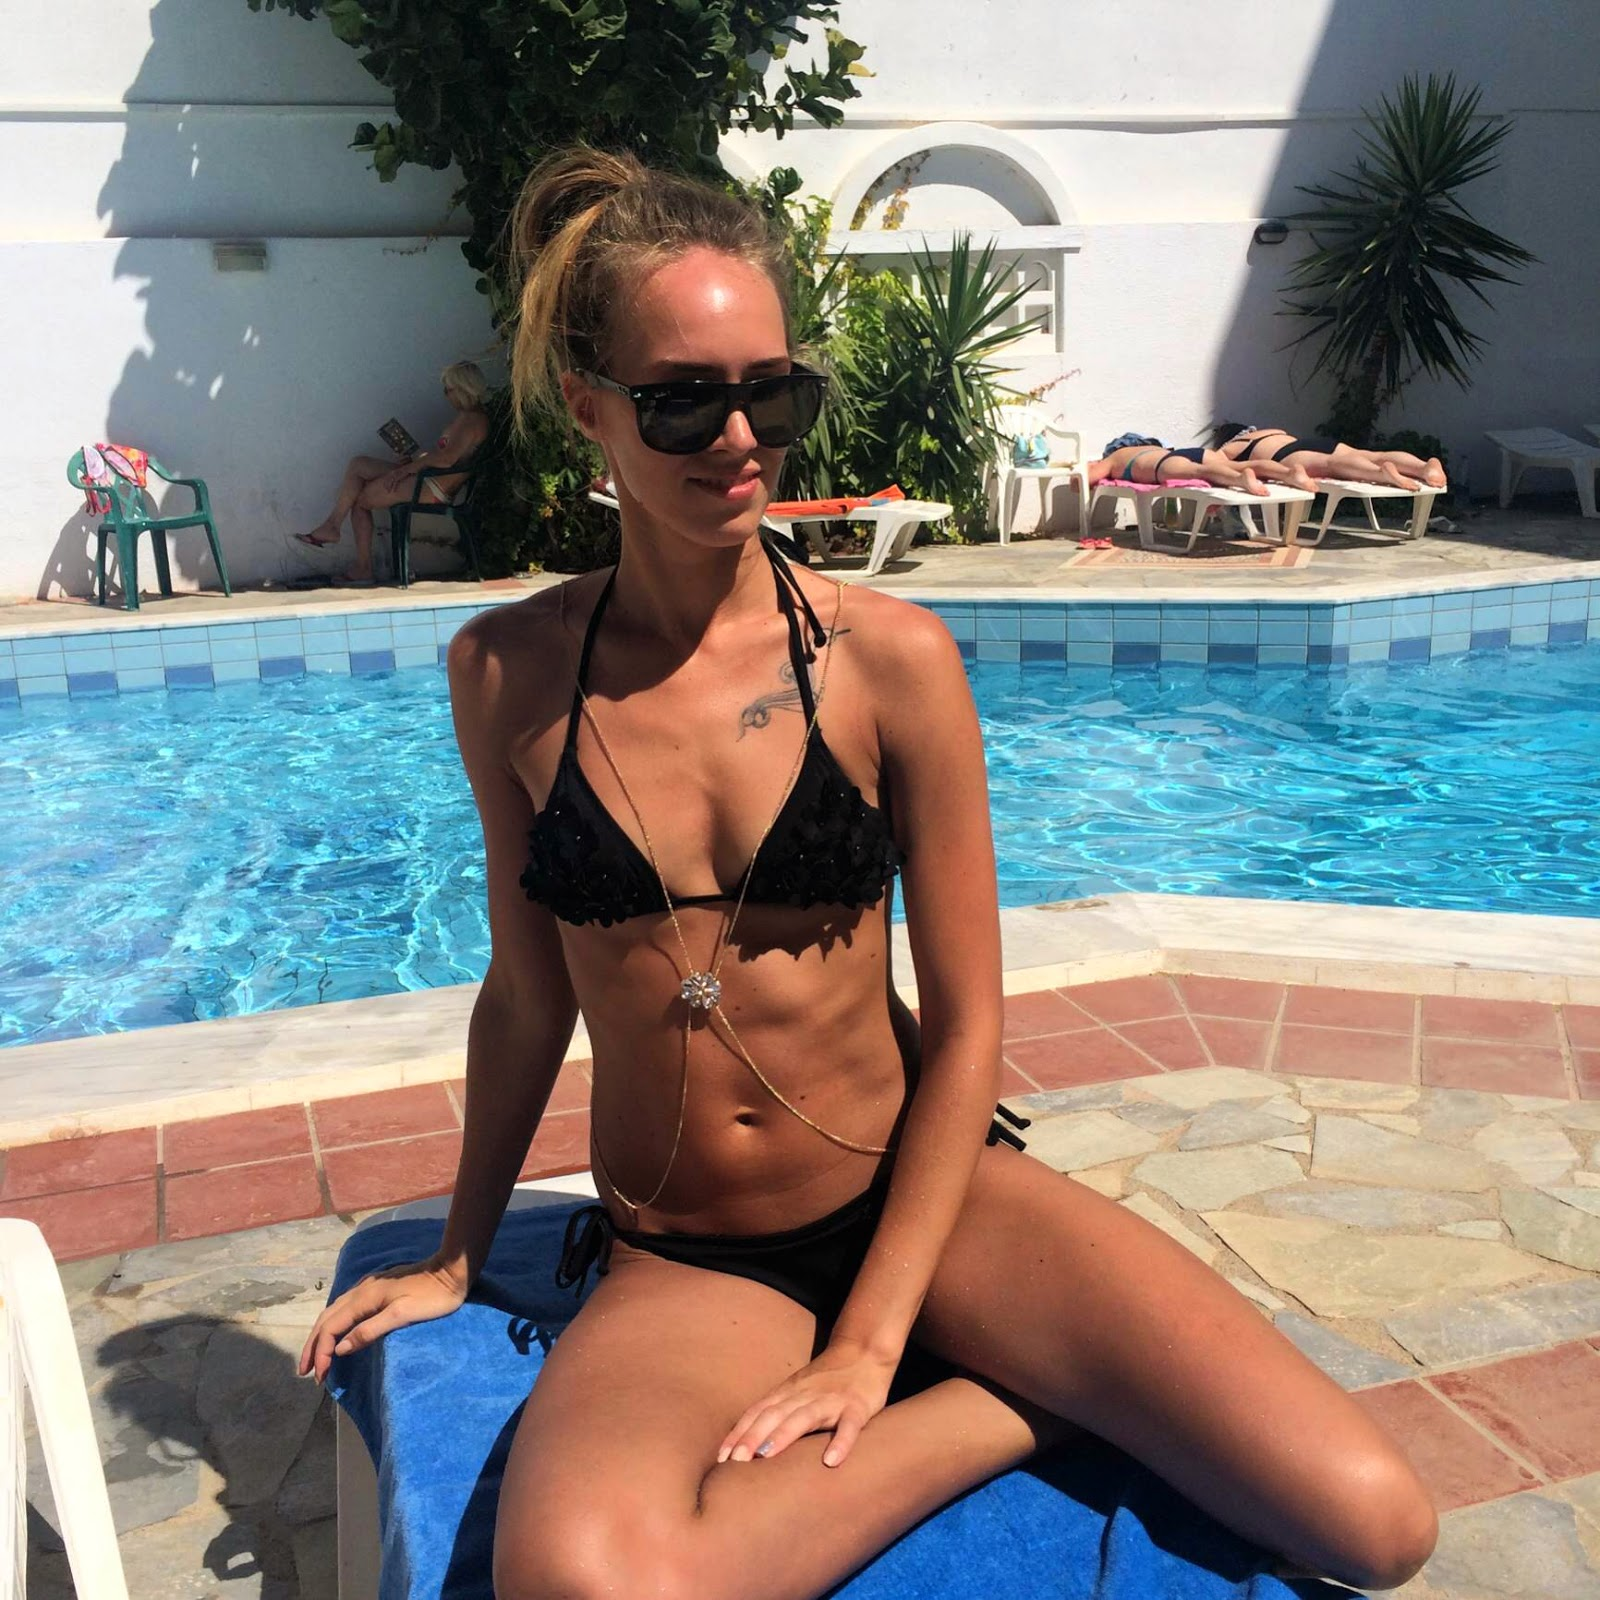 hm black bikini river island bodychain ray ban sunglasses